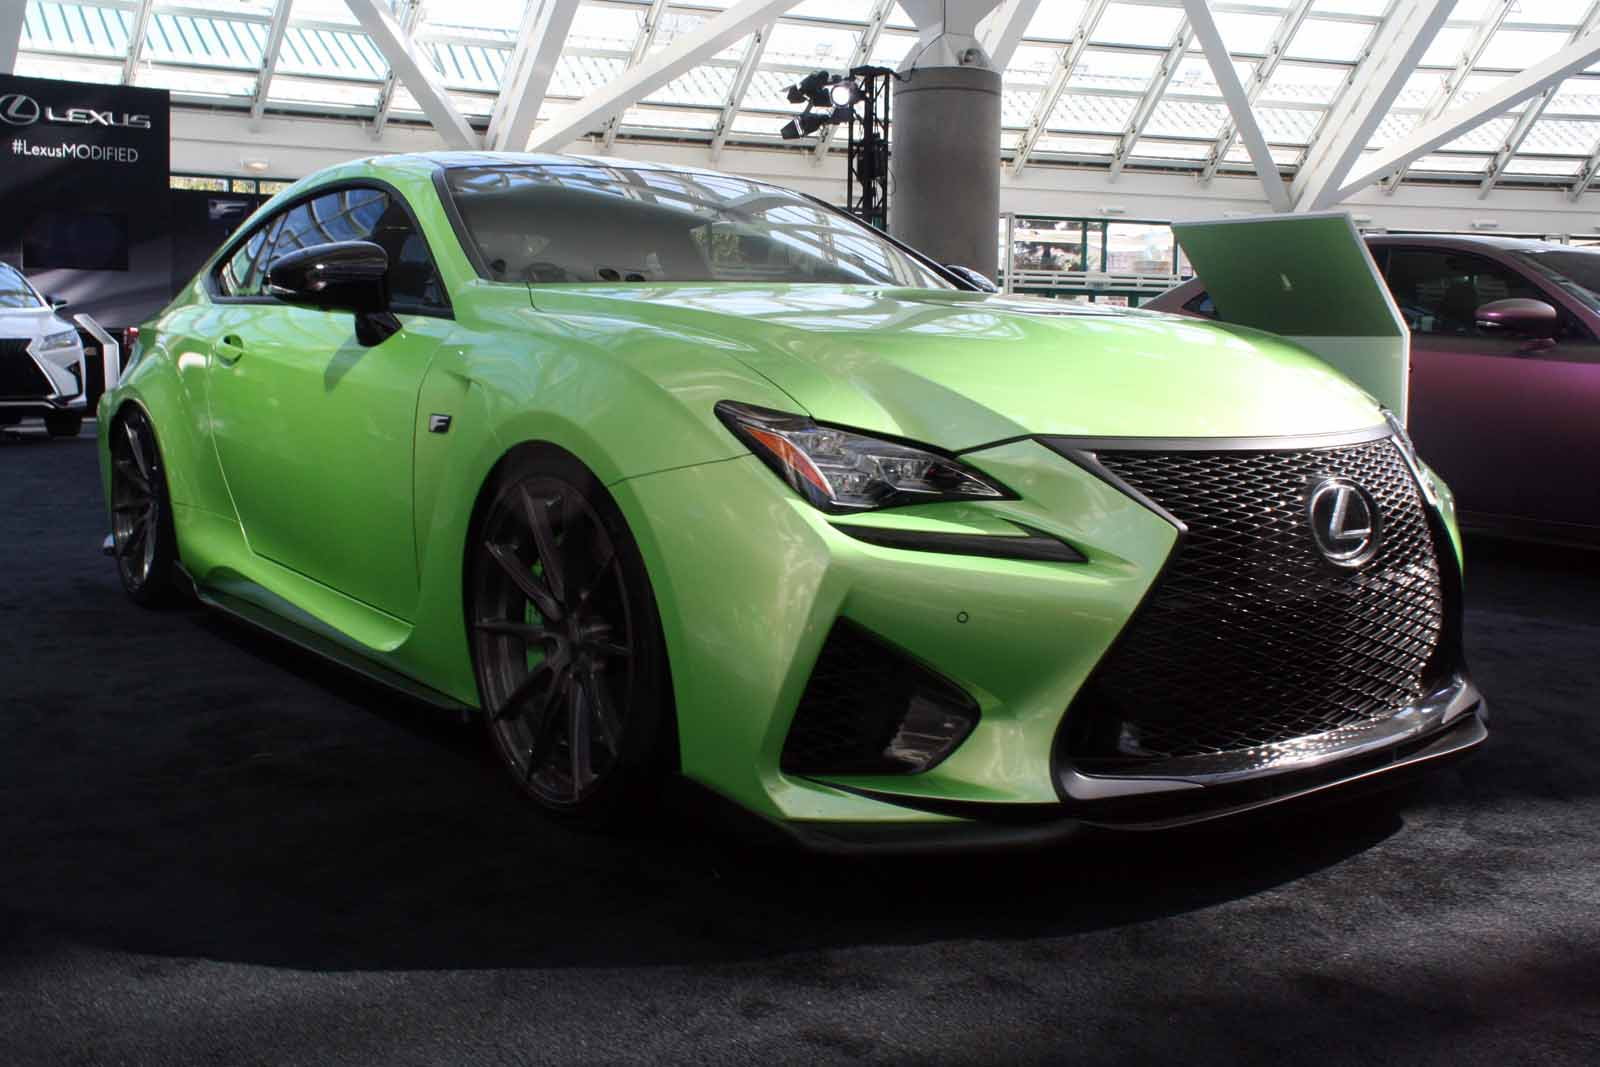 Gallery: Lexus Brings Army of Modified Cars to the LA Auto Show ...